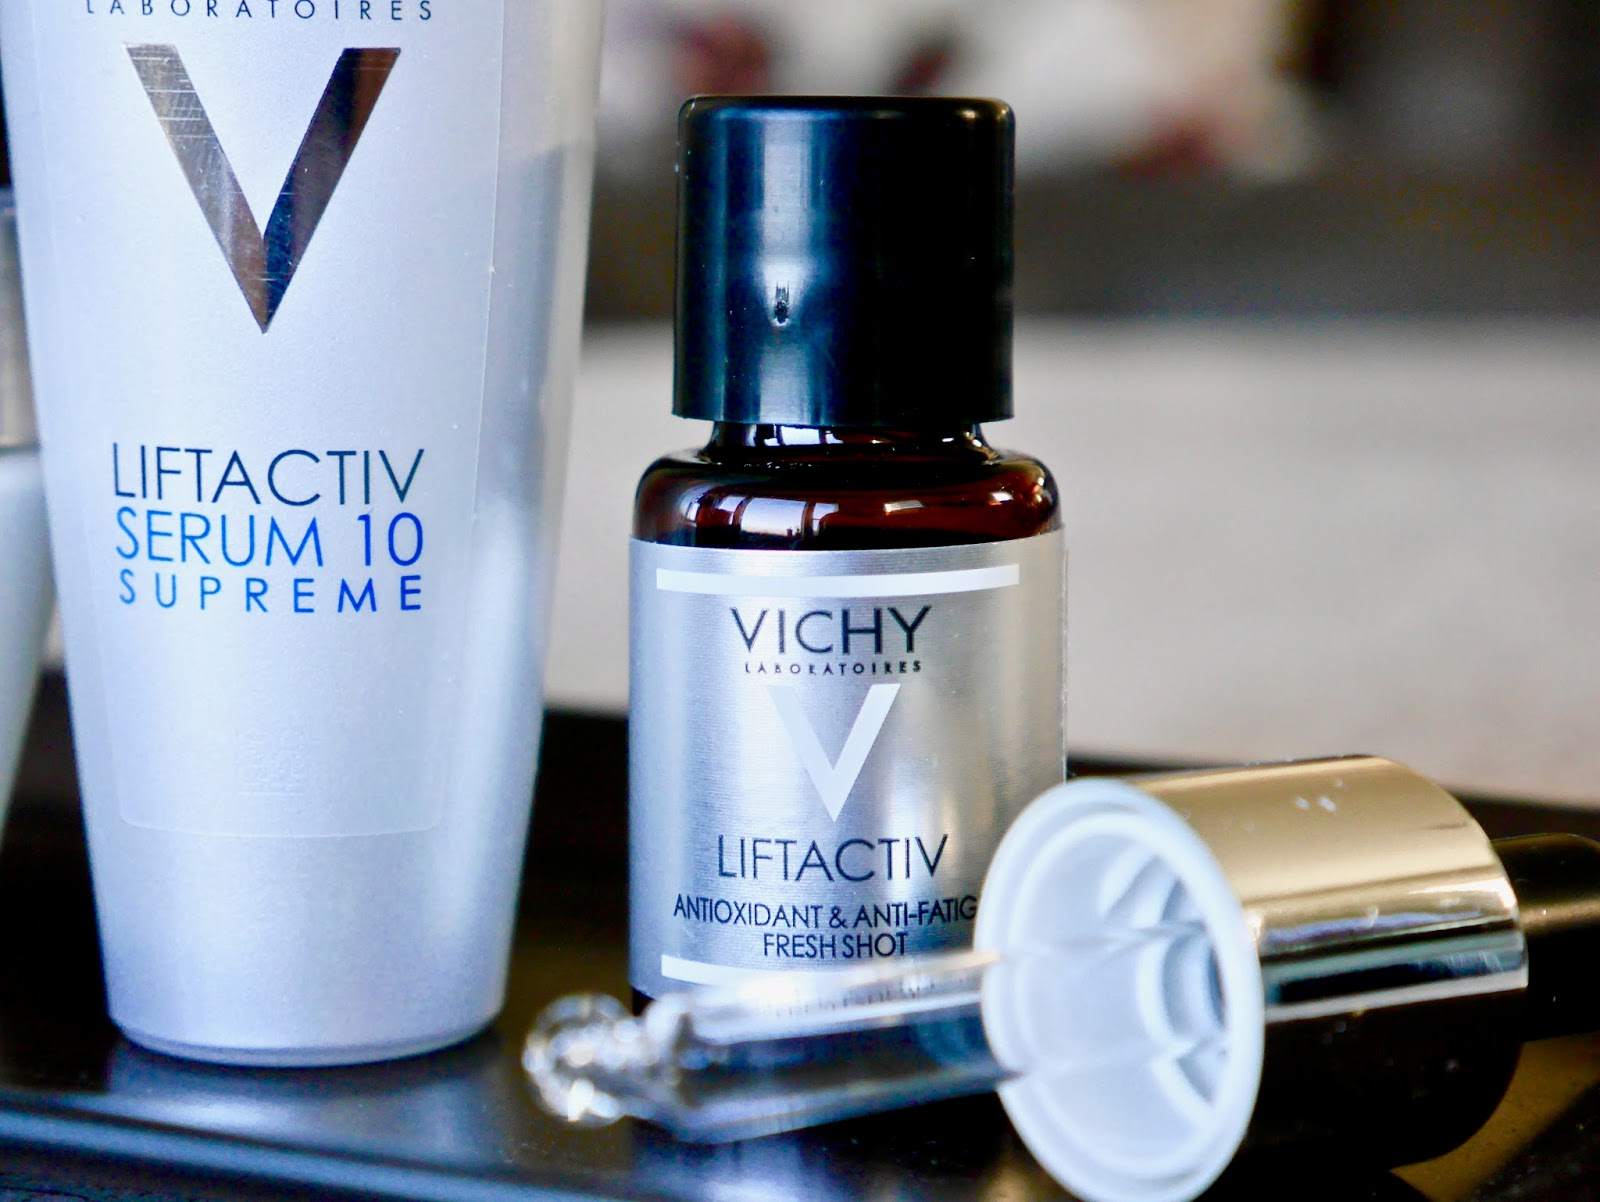 Beauty, skincare, Canadian beauty, skincare routine, Vichy, serum, moisturizer, Vitamin C serum,